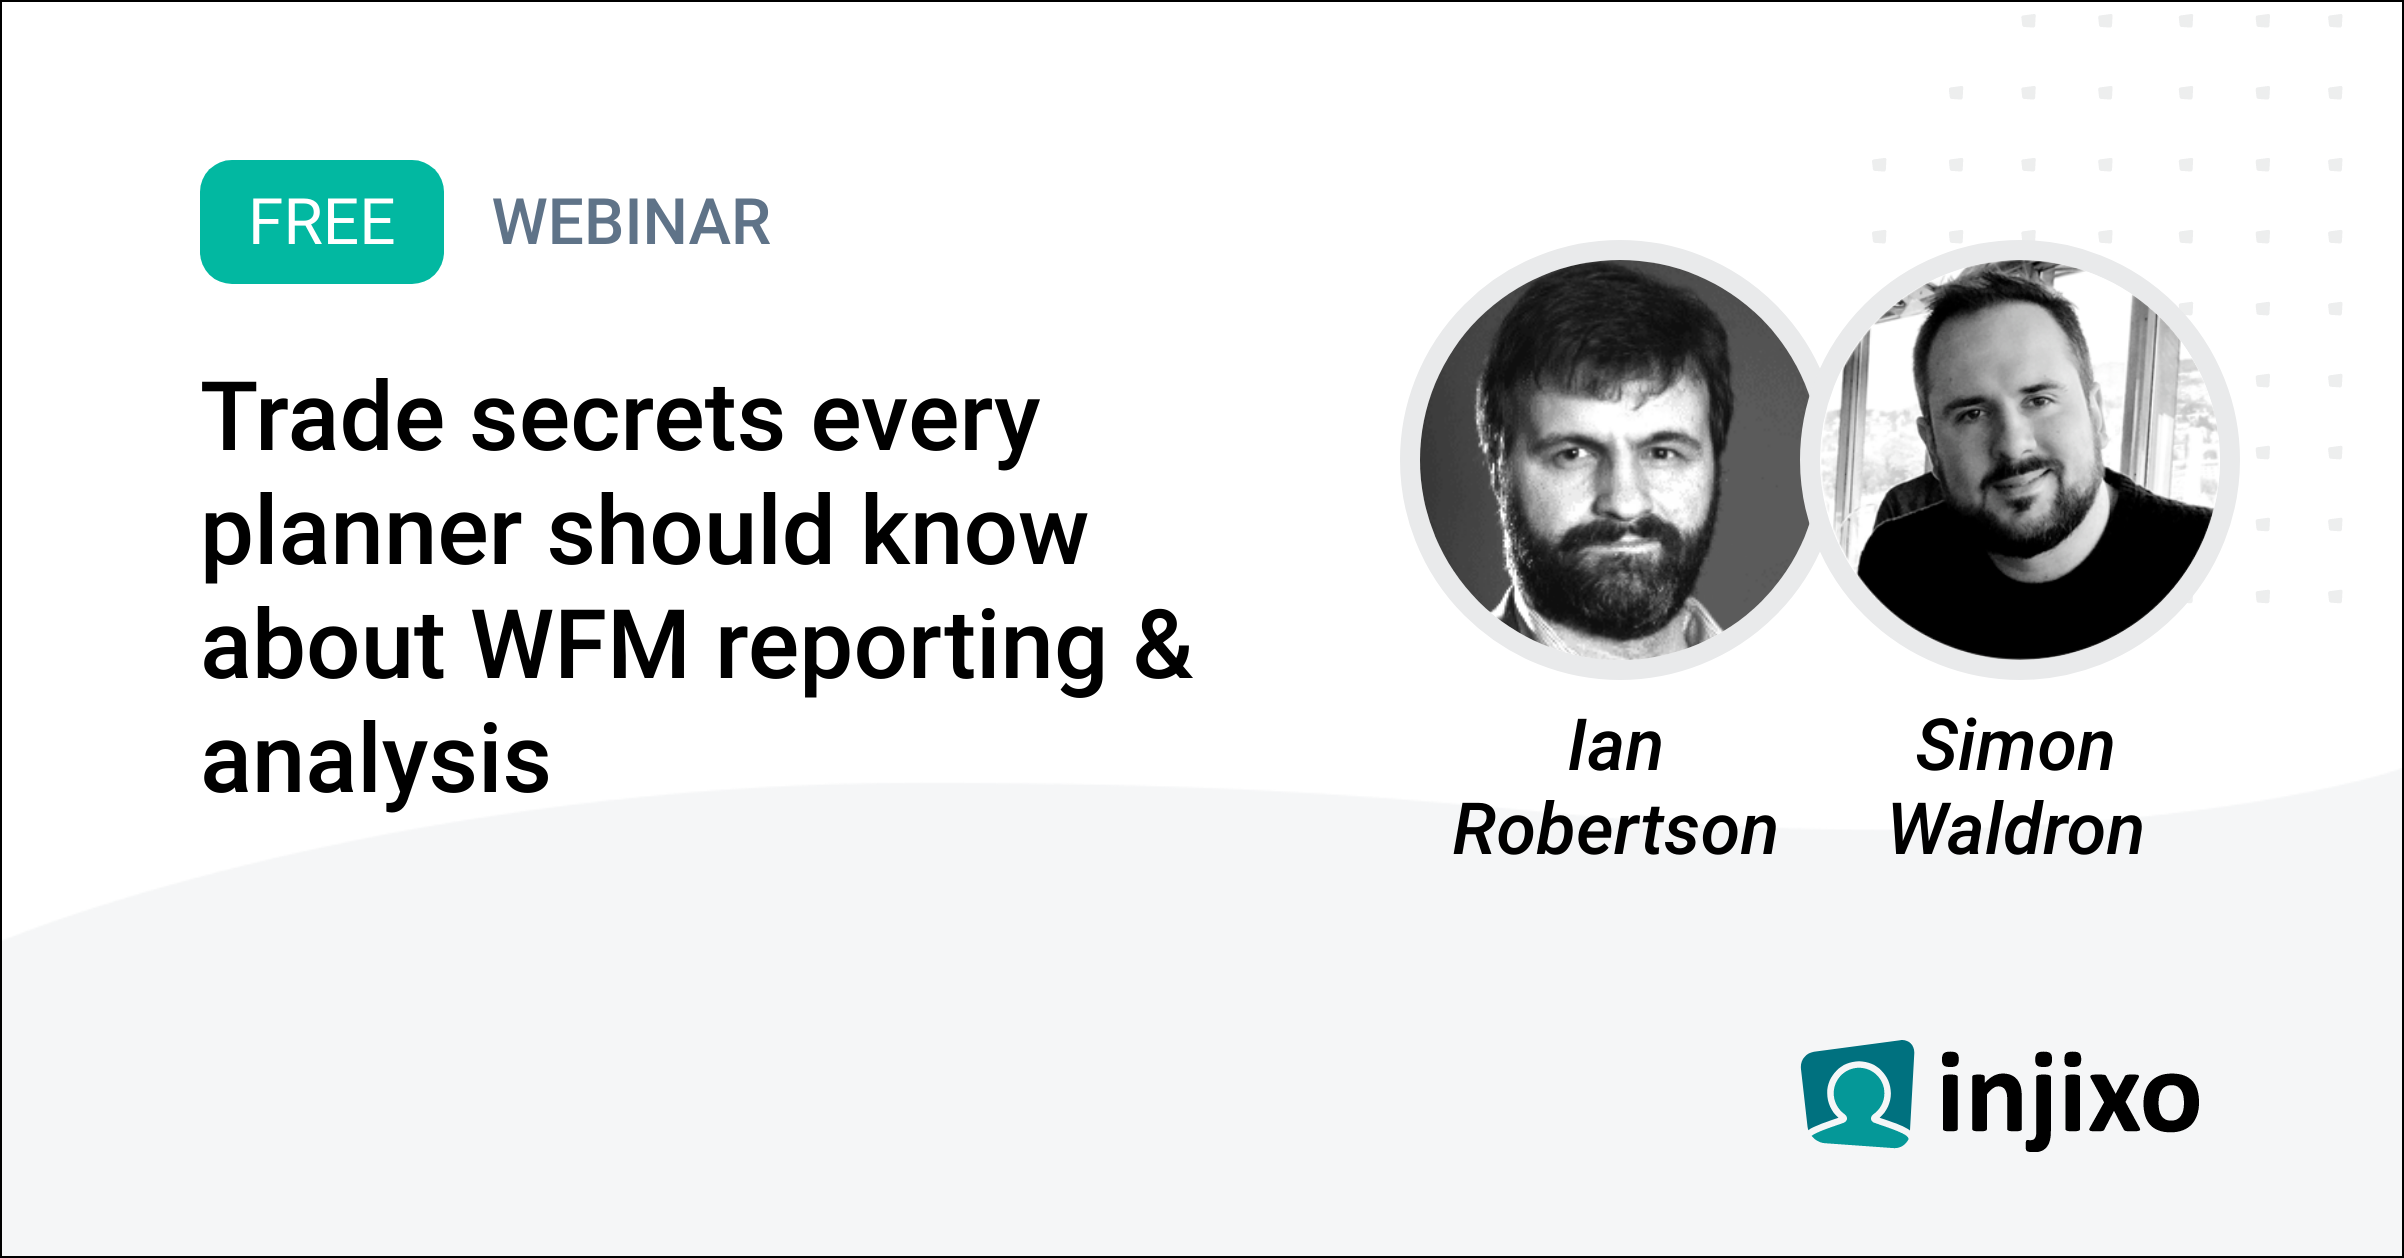 Trade secrets every planner should know about WFM reporting & analysis